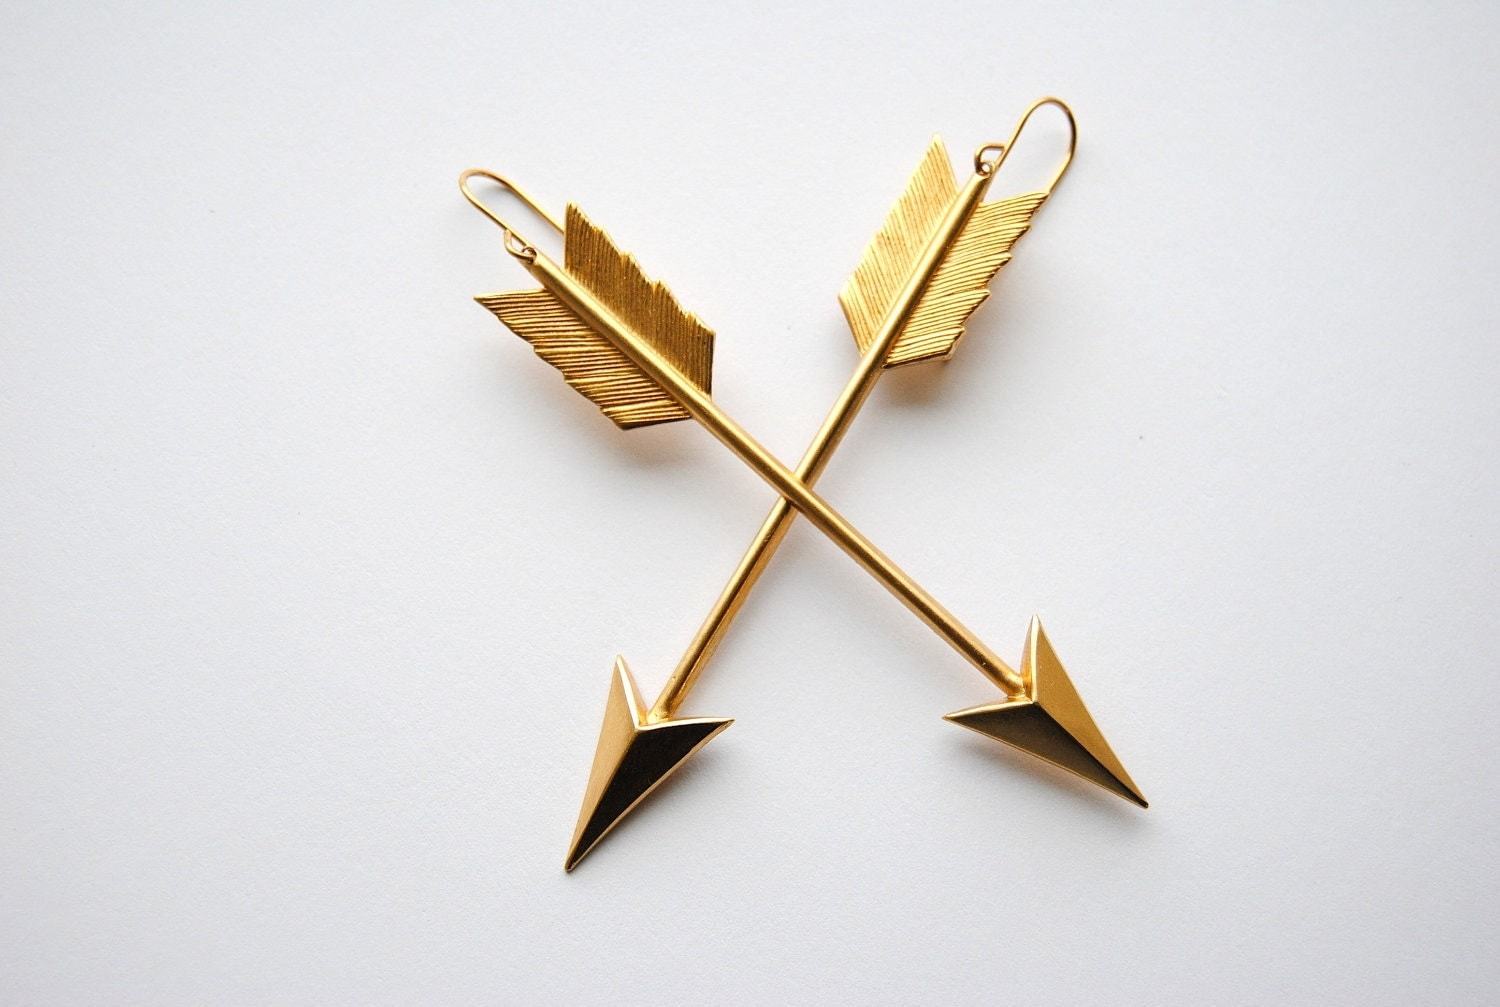 Cupid's Arrow Earrings - Handmade Jewelry - Free Shipping in the US - Valentine's Day Jewelry